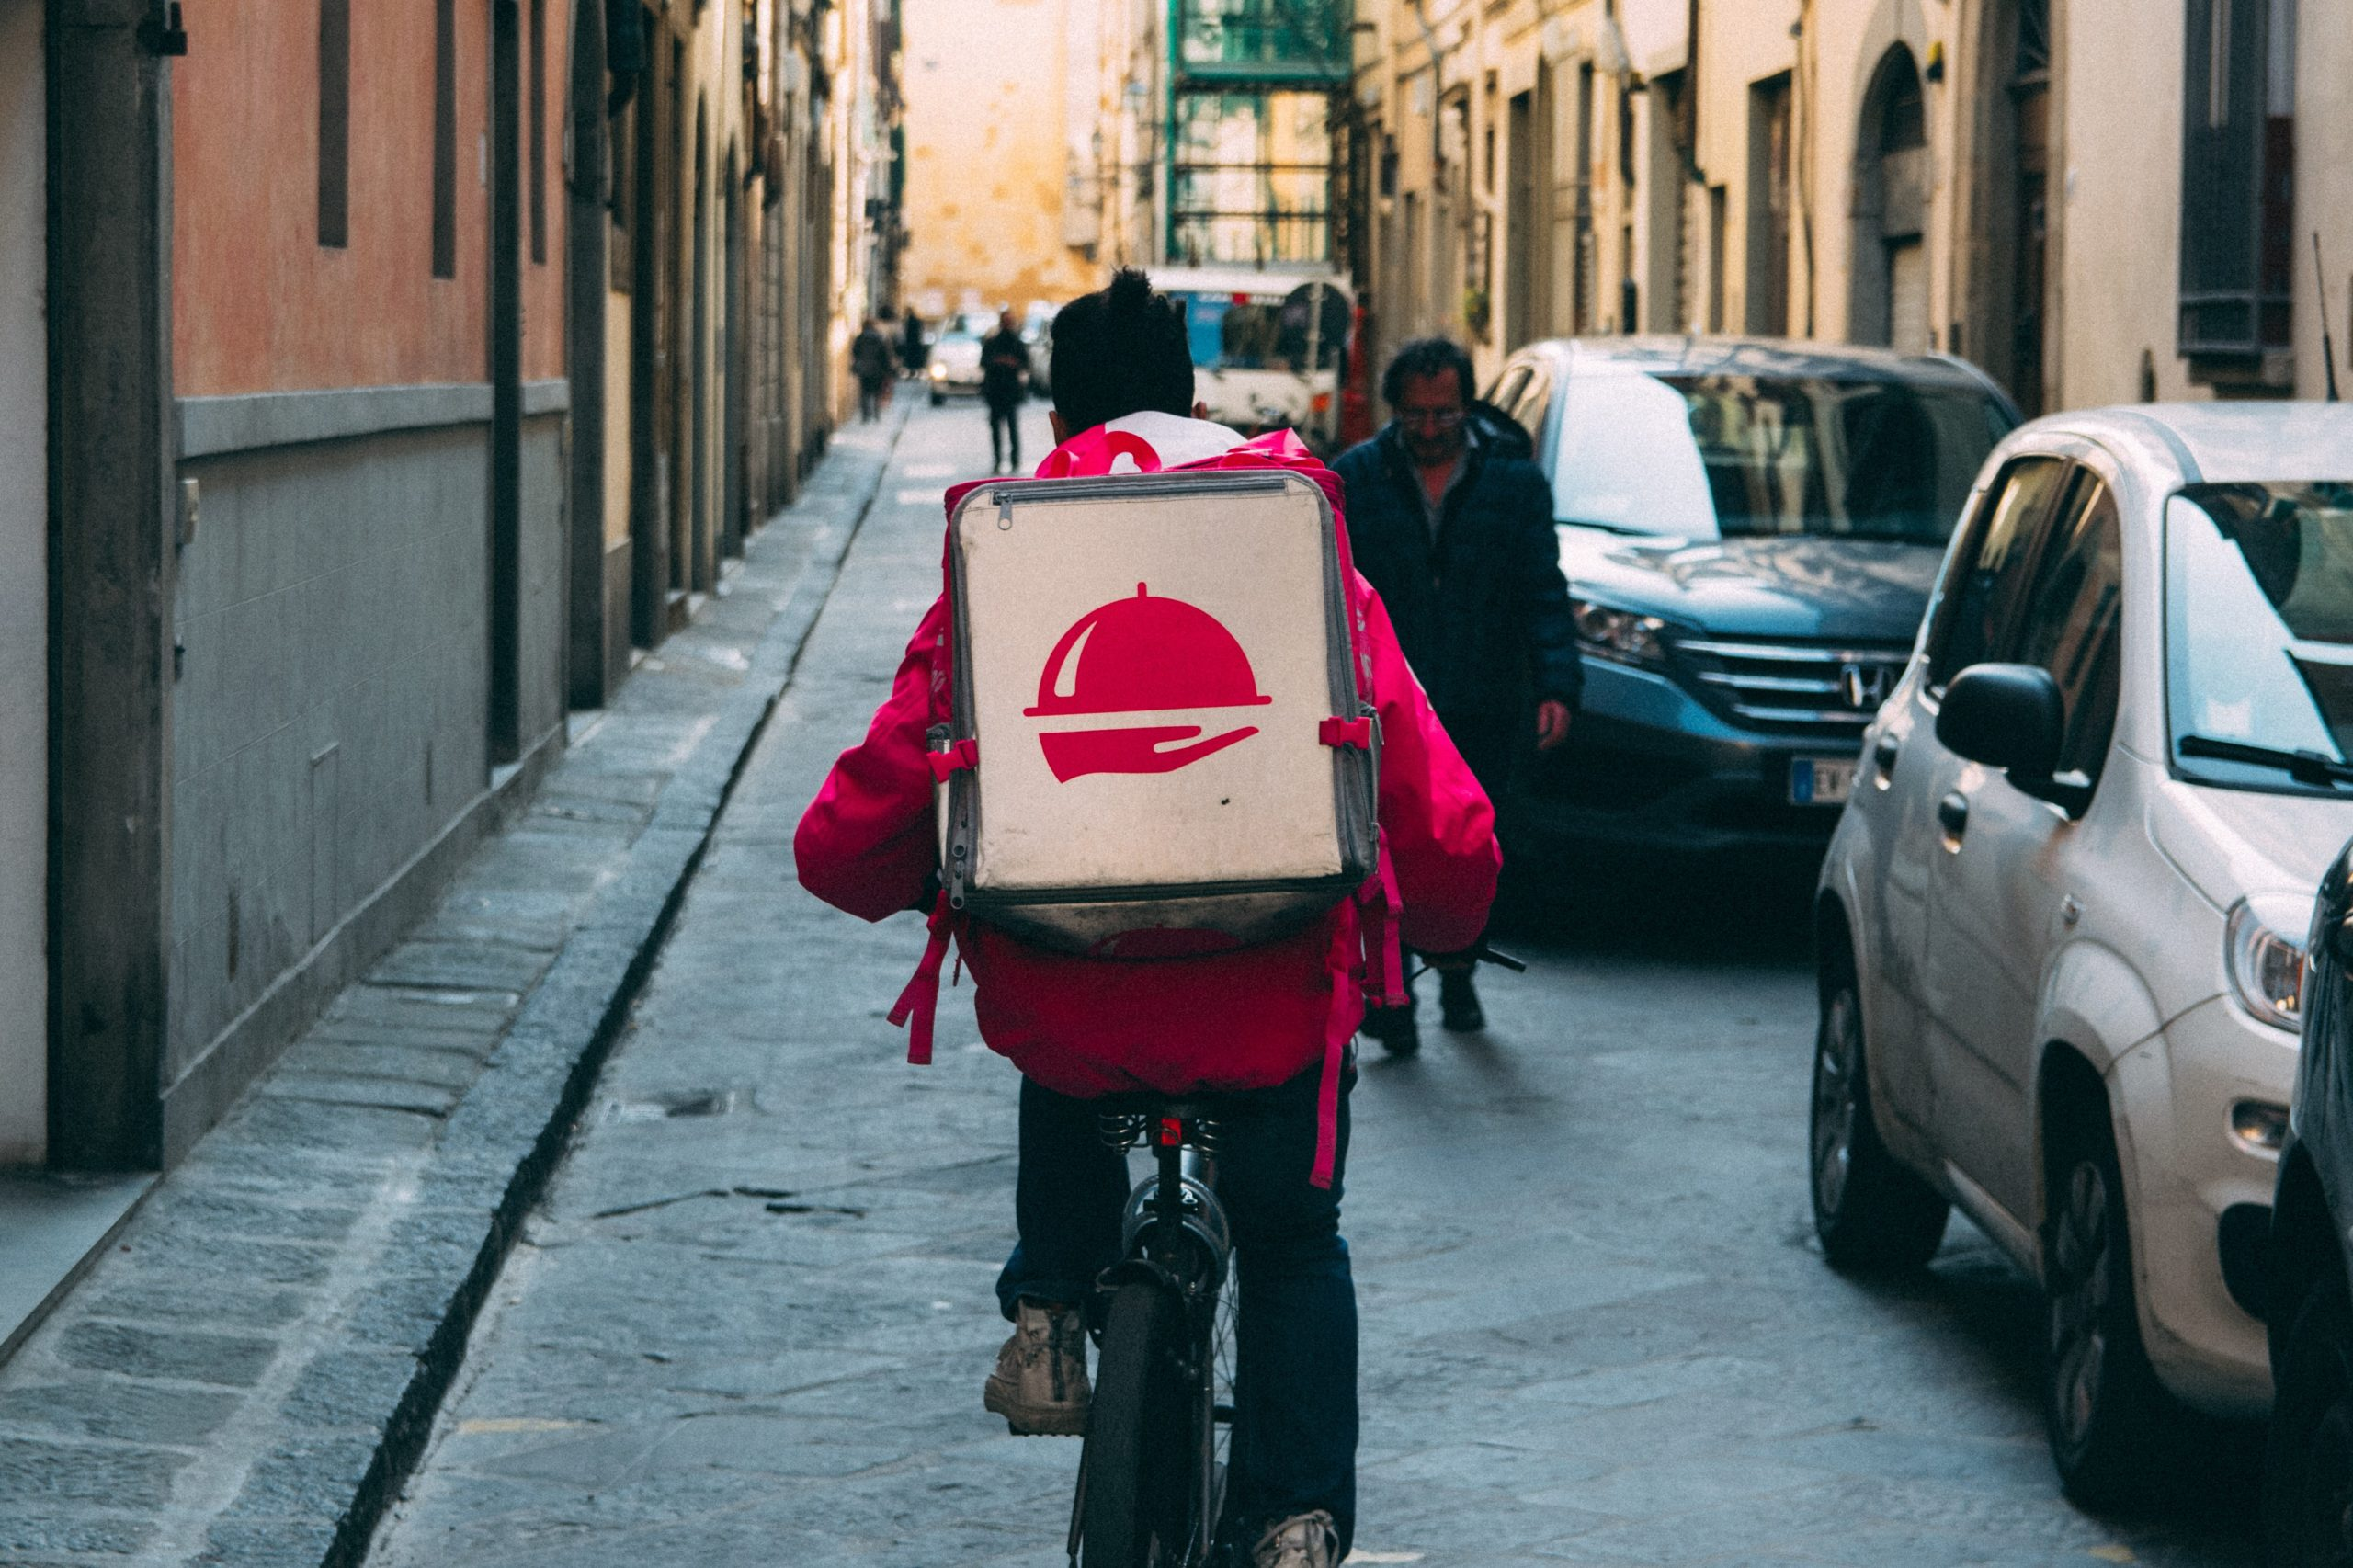 delivery box carried by a man on bicycle